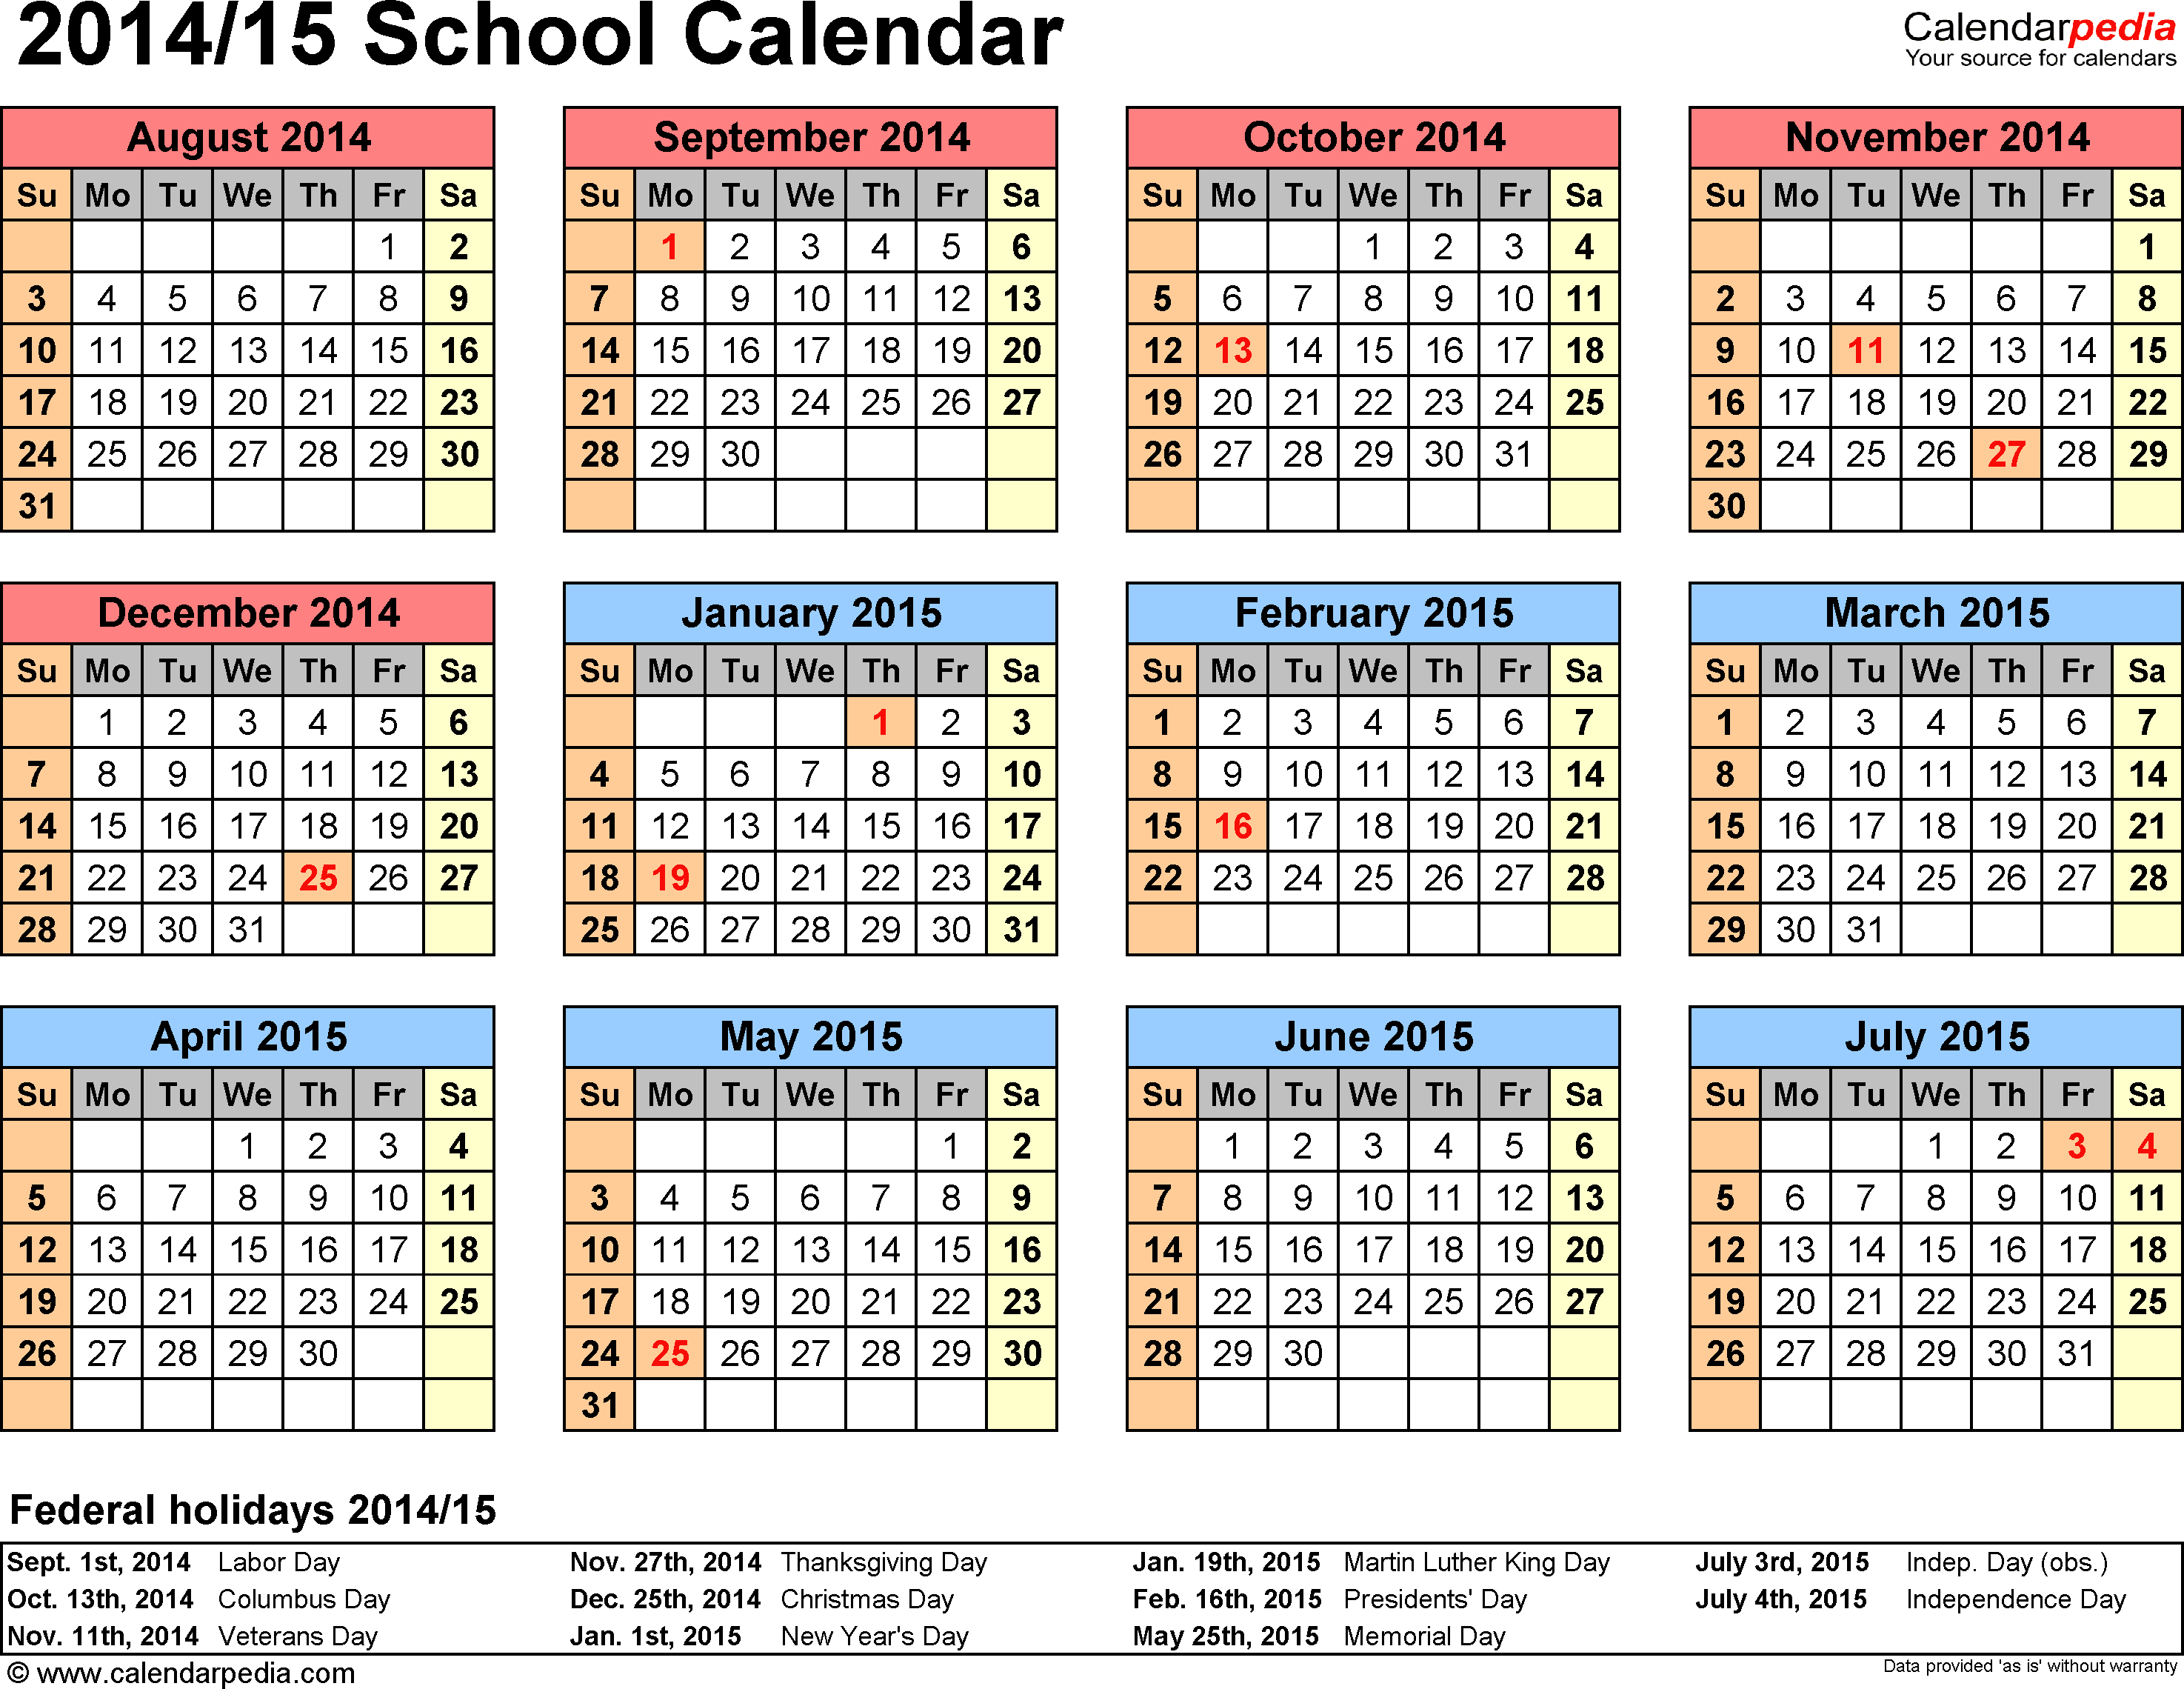 Download Template 4: School calendar 2014/15 in PDF format, landscape, 1 page, year at a glance